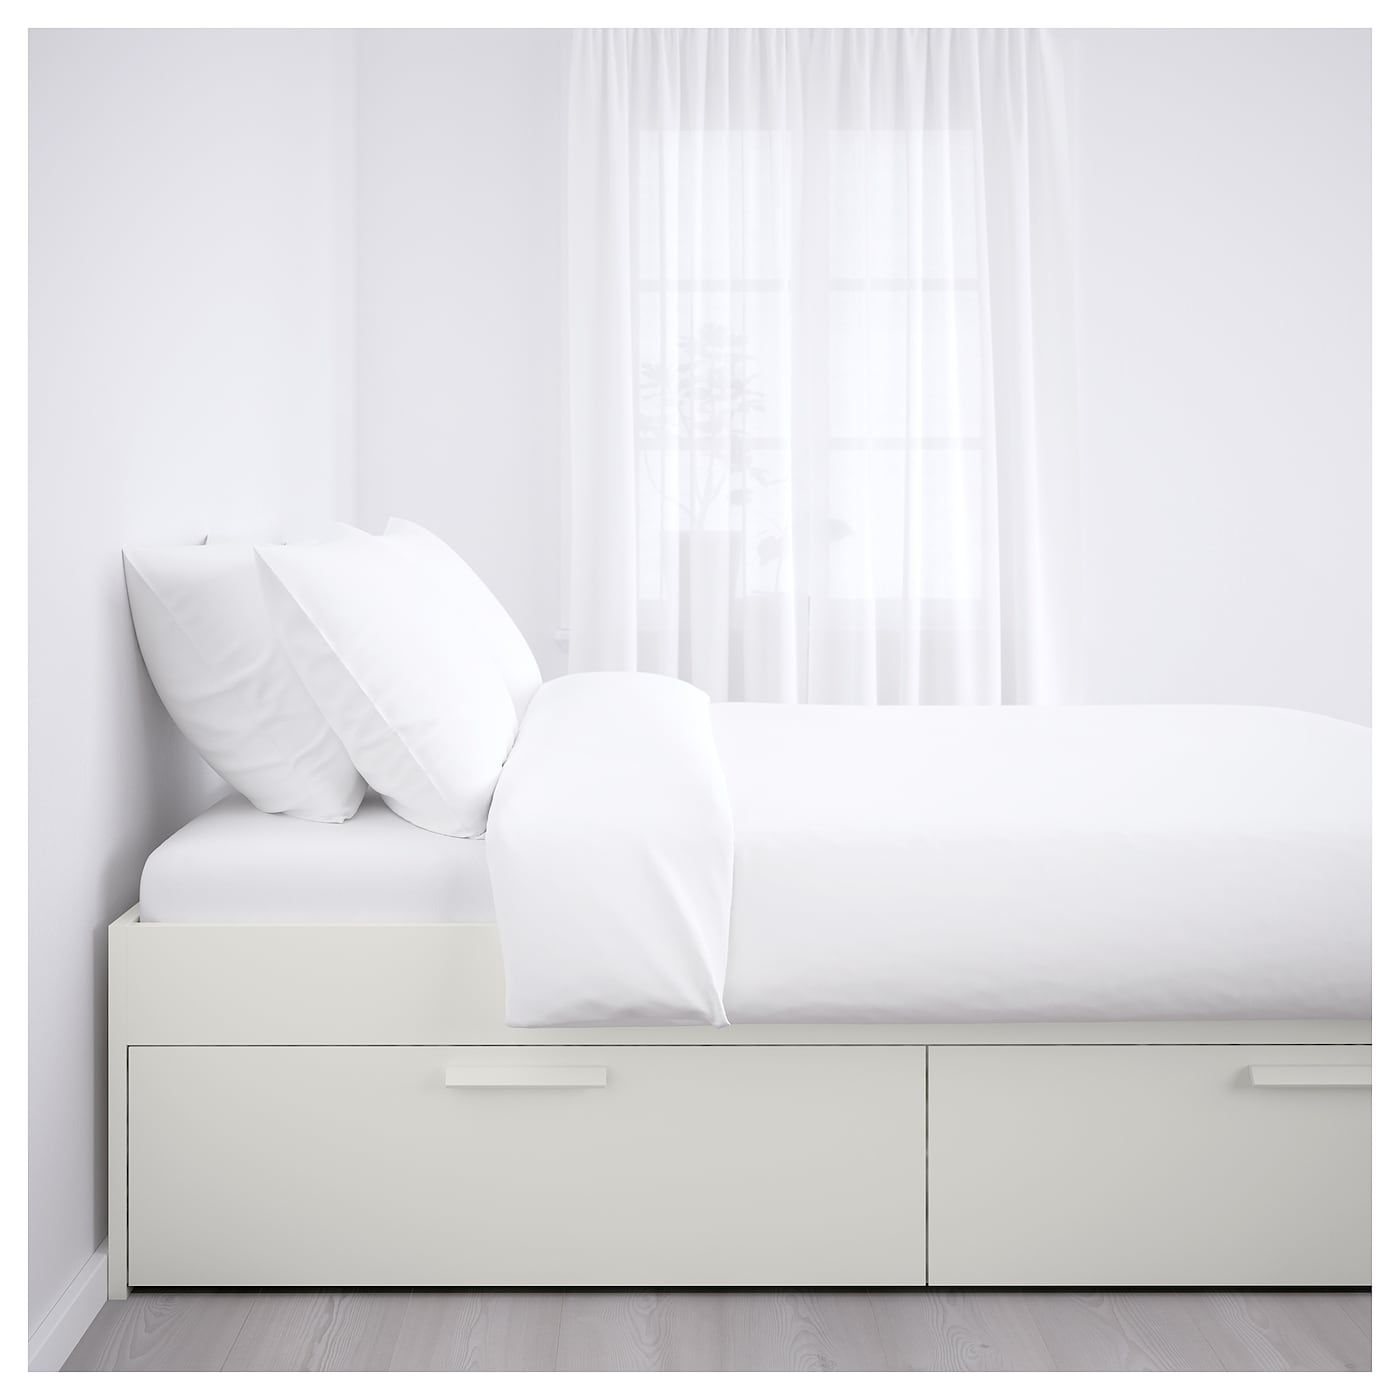 Brimnes Bed Frame With Storage White Luroy Queen Ikea Bed Frame With Storage Adjustable Beds Brimnes Bed